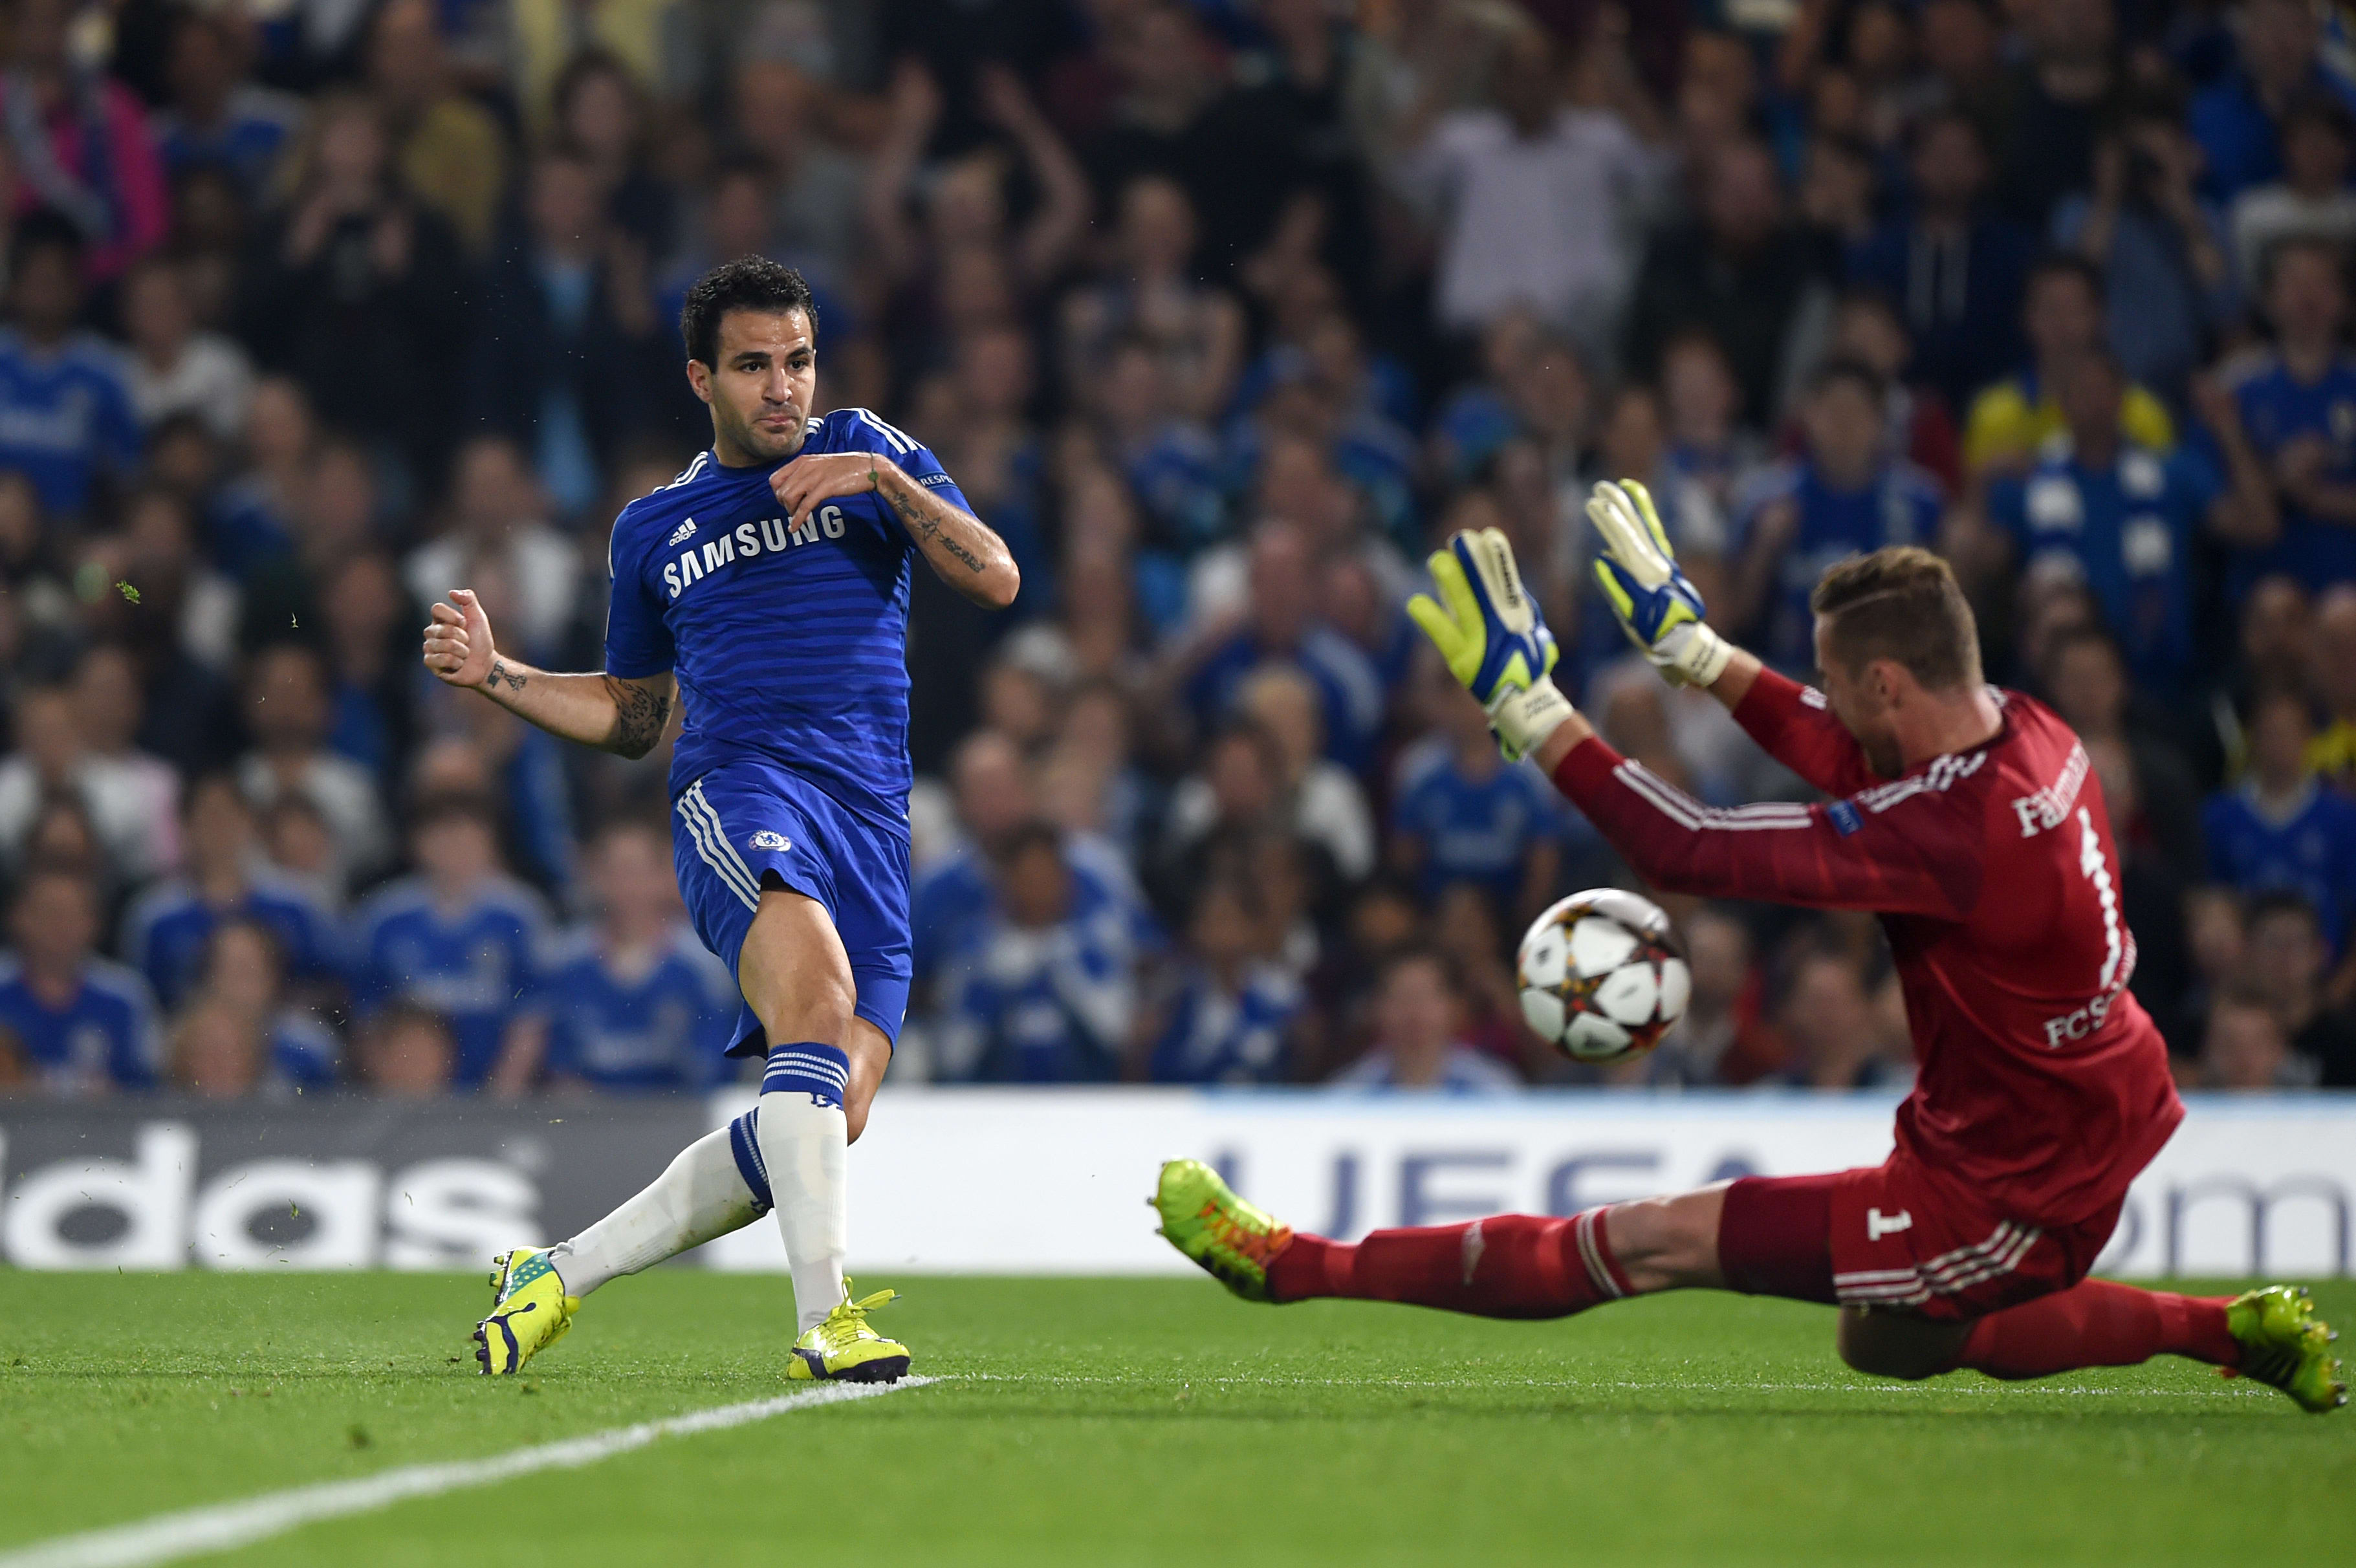 Fabregas beats the Schalke keeper for his first Chelsea goal.